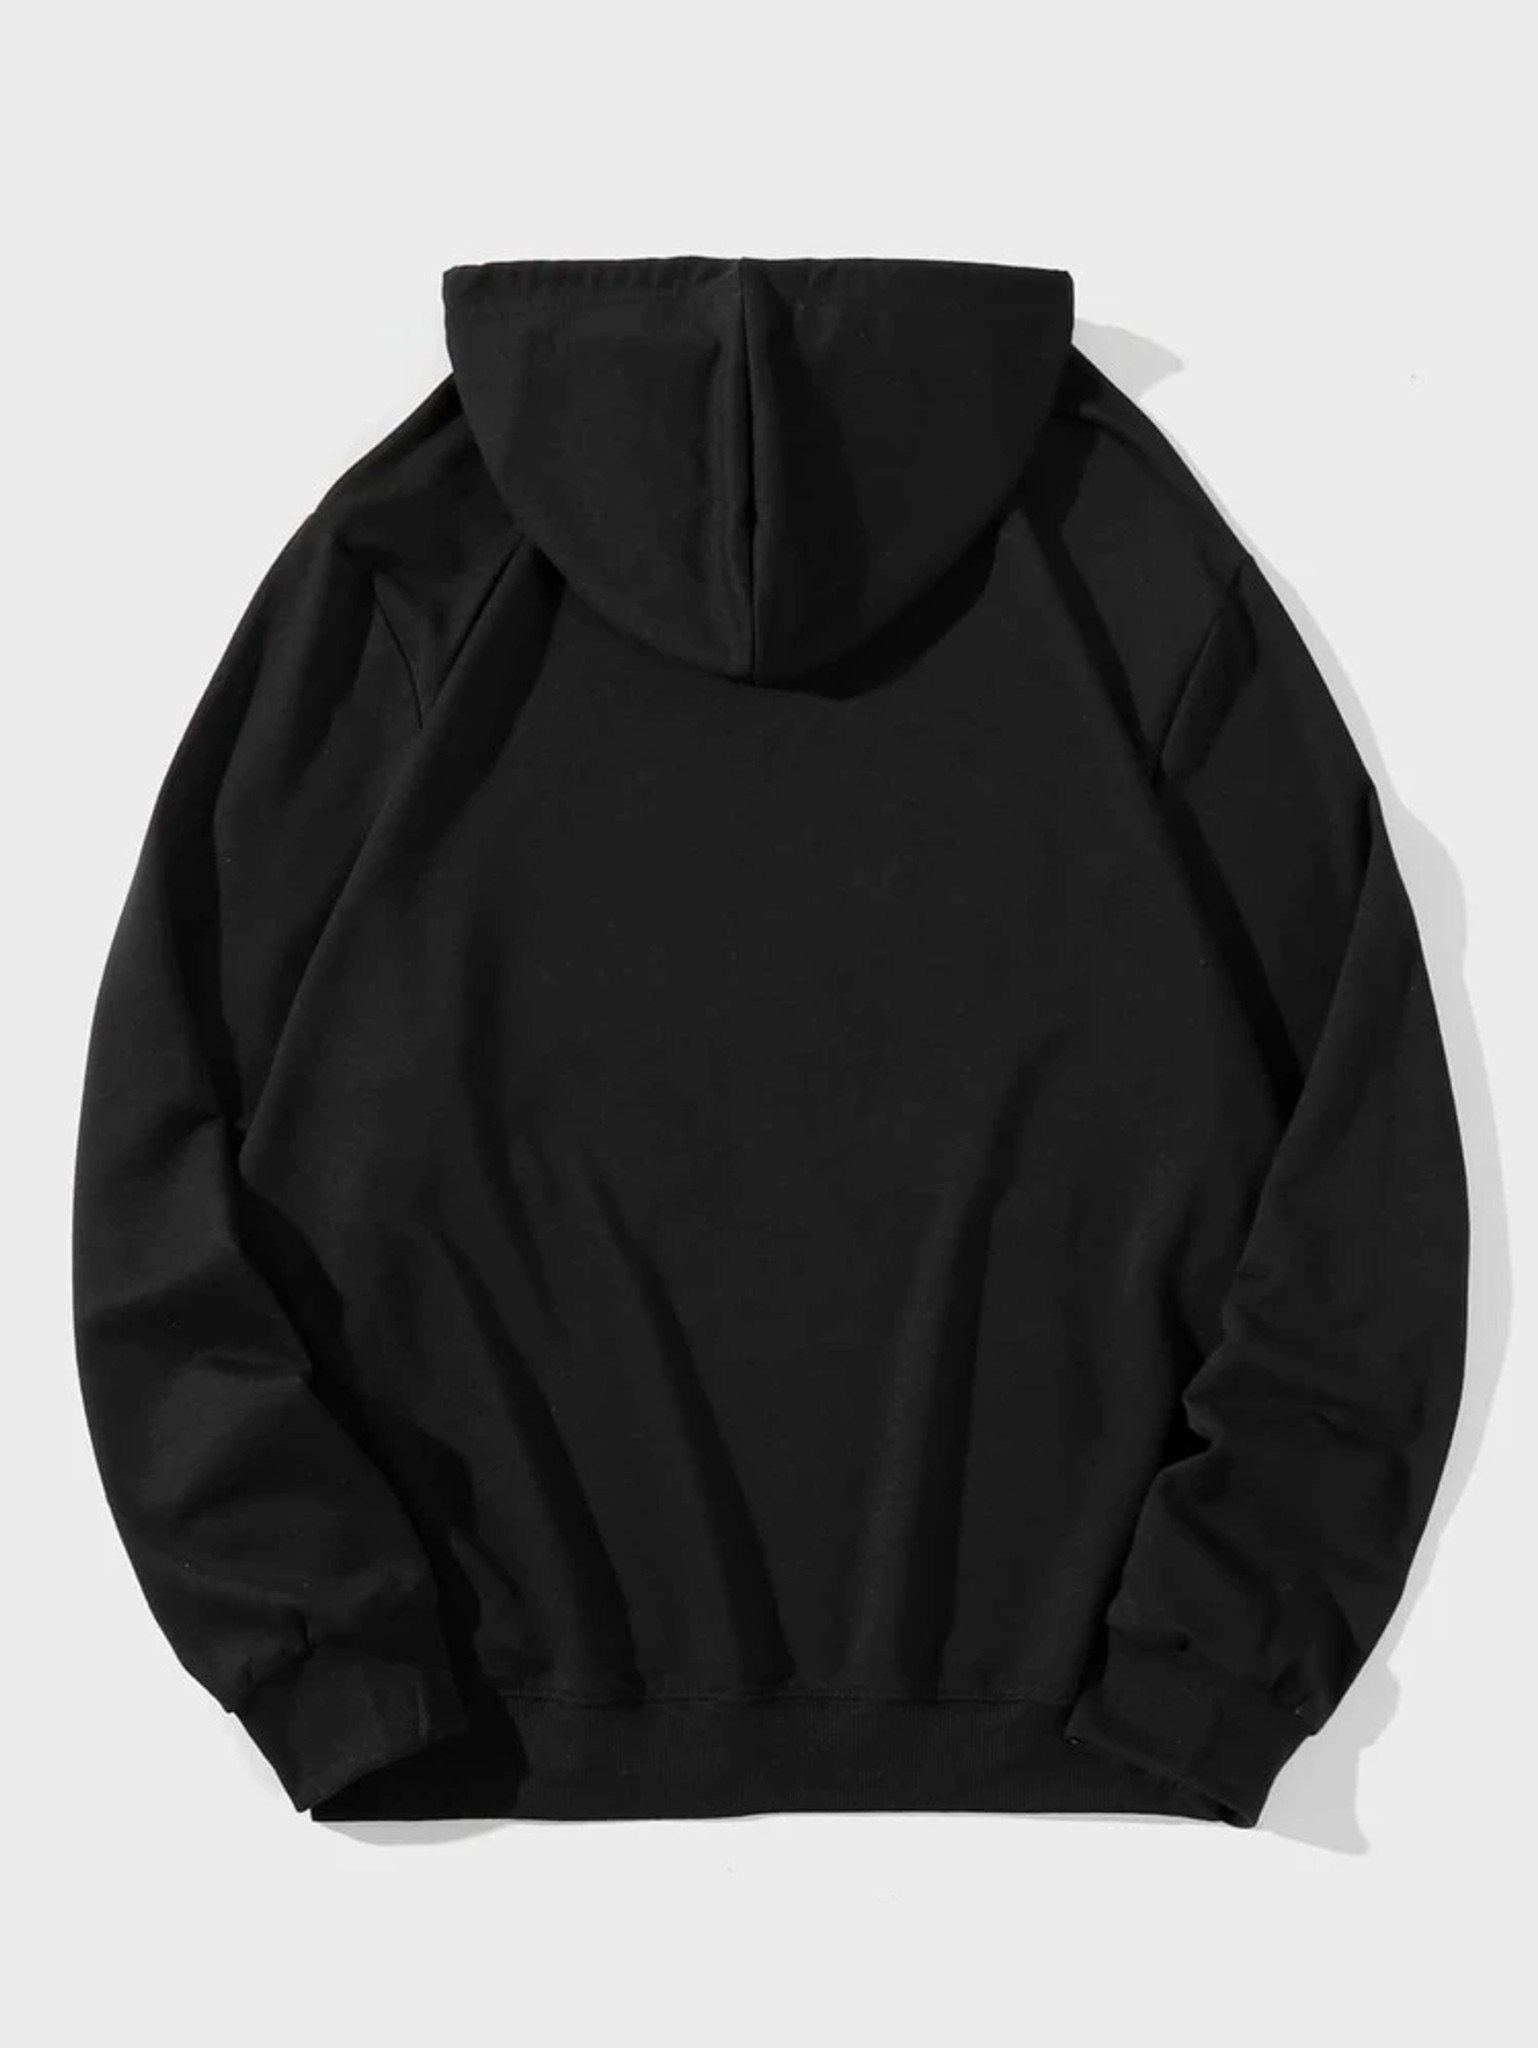 Fifth Avenue DIFT90 Astronaut Chilling Print Hoodie - Black